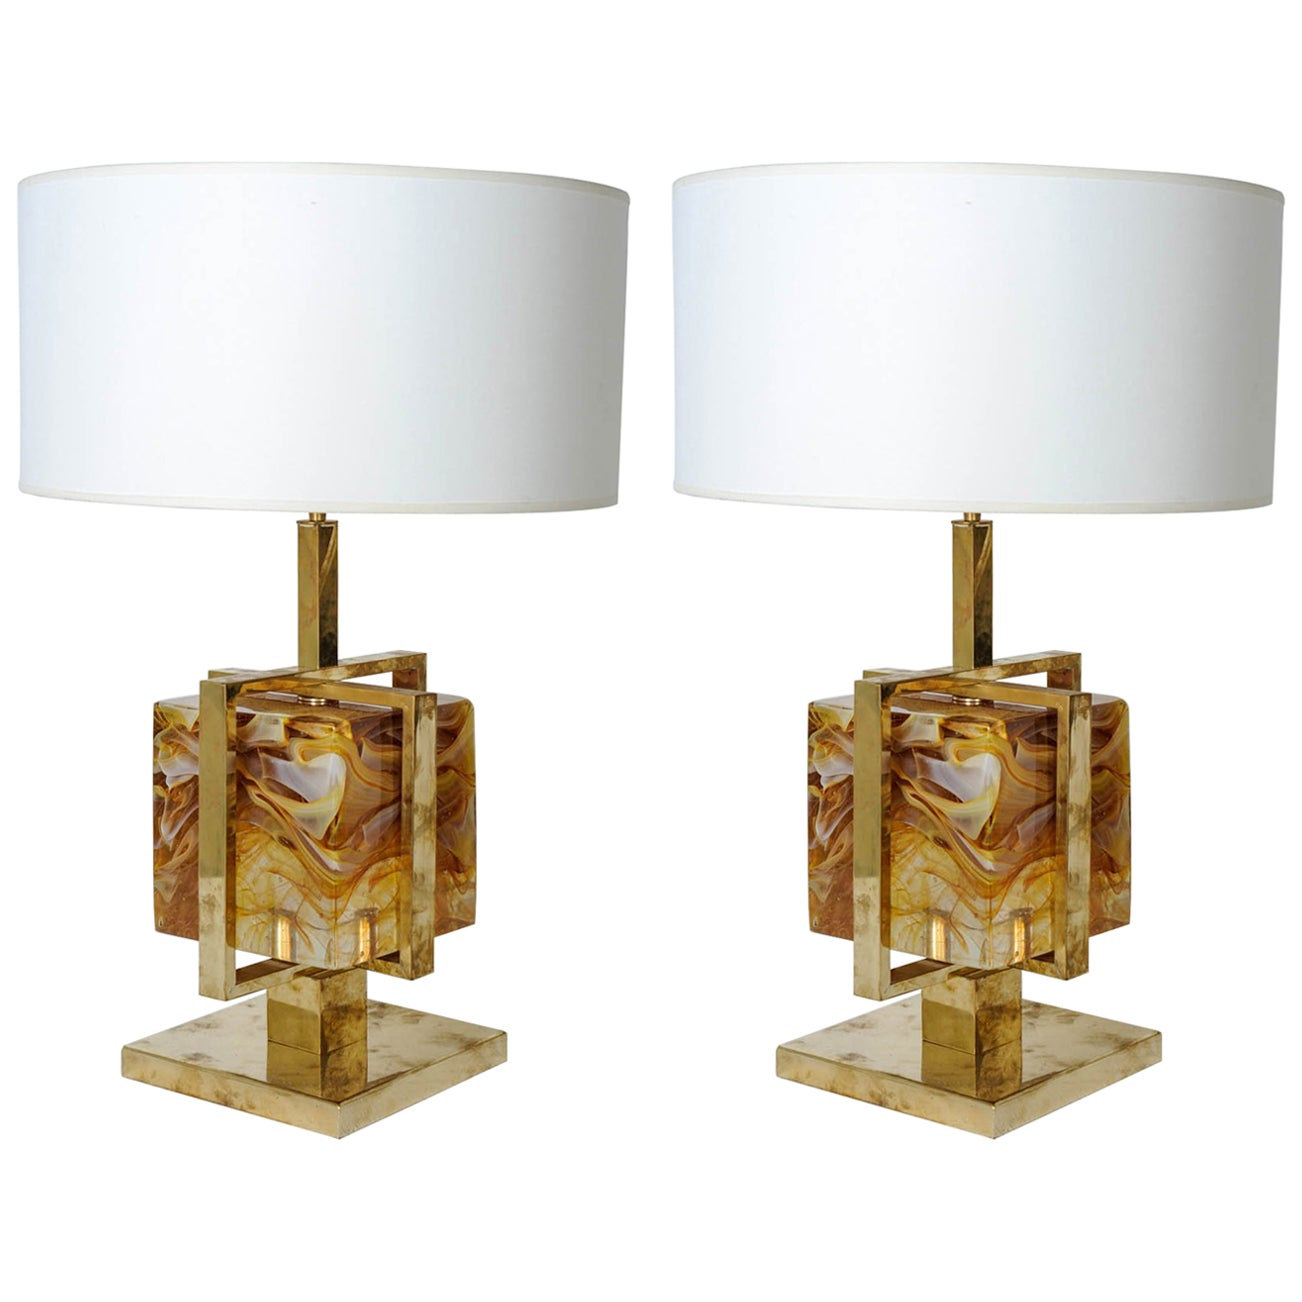 Pair of Murano Glass Table Lamps in the Style of Cenedese